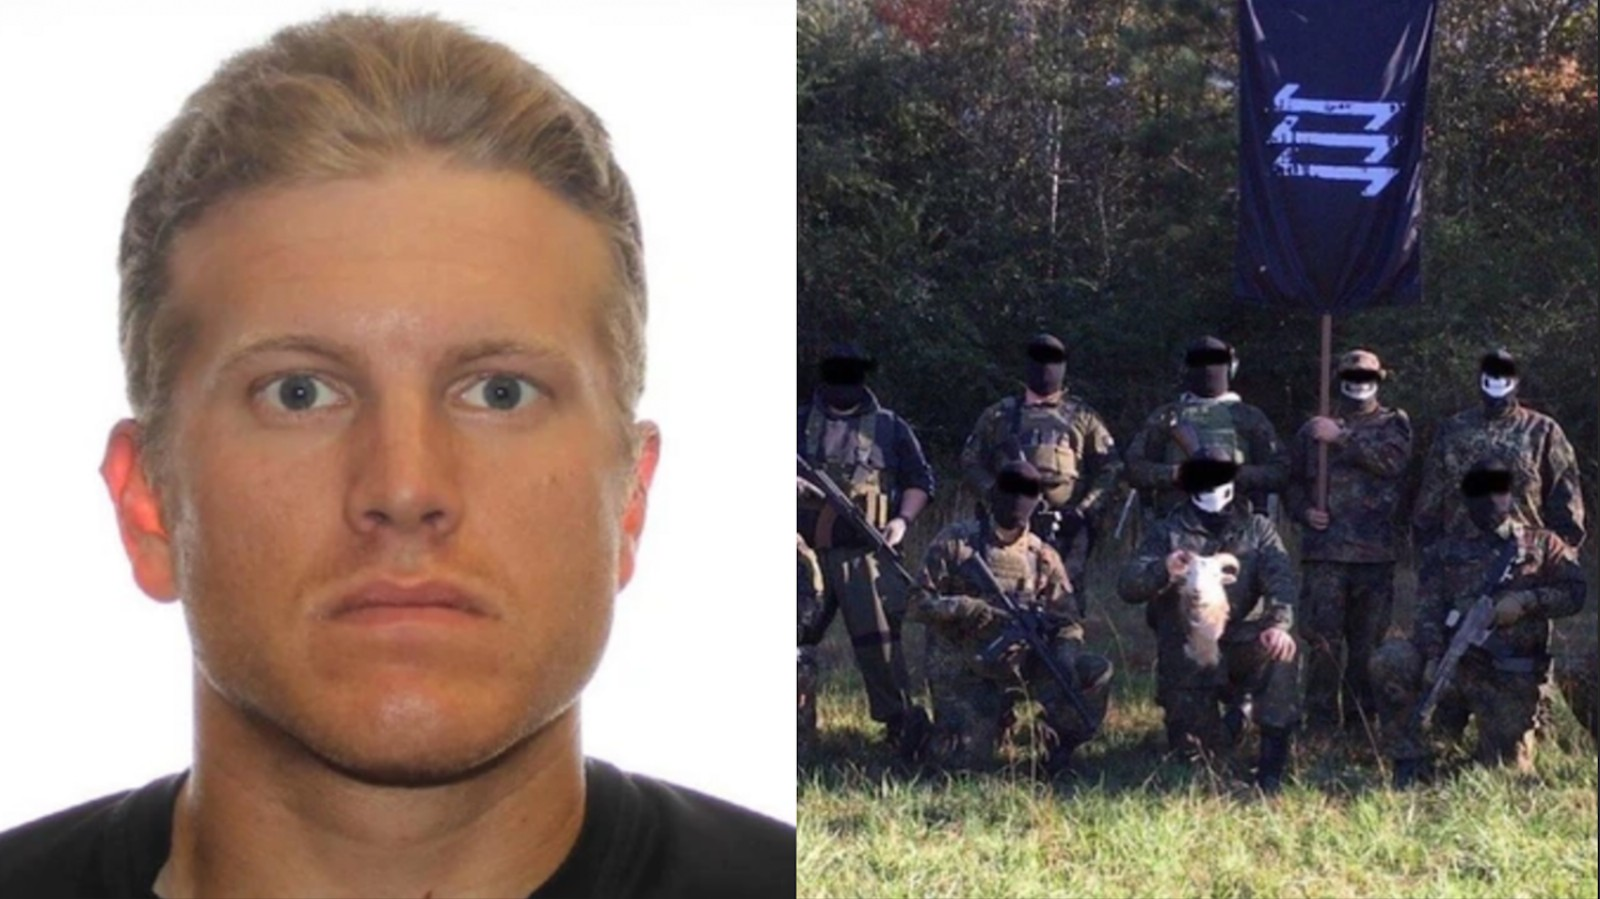 Neo-Nazi Terror Group Harbouring Missing Ex-Soldier: Sources